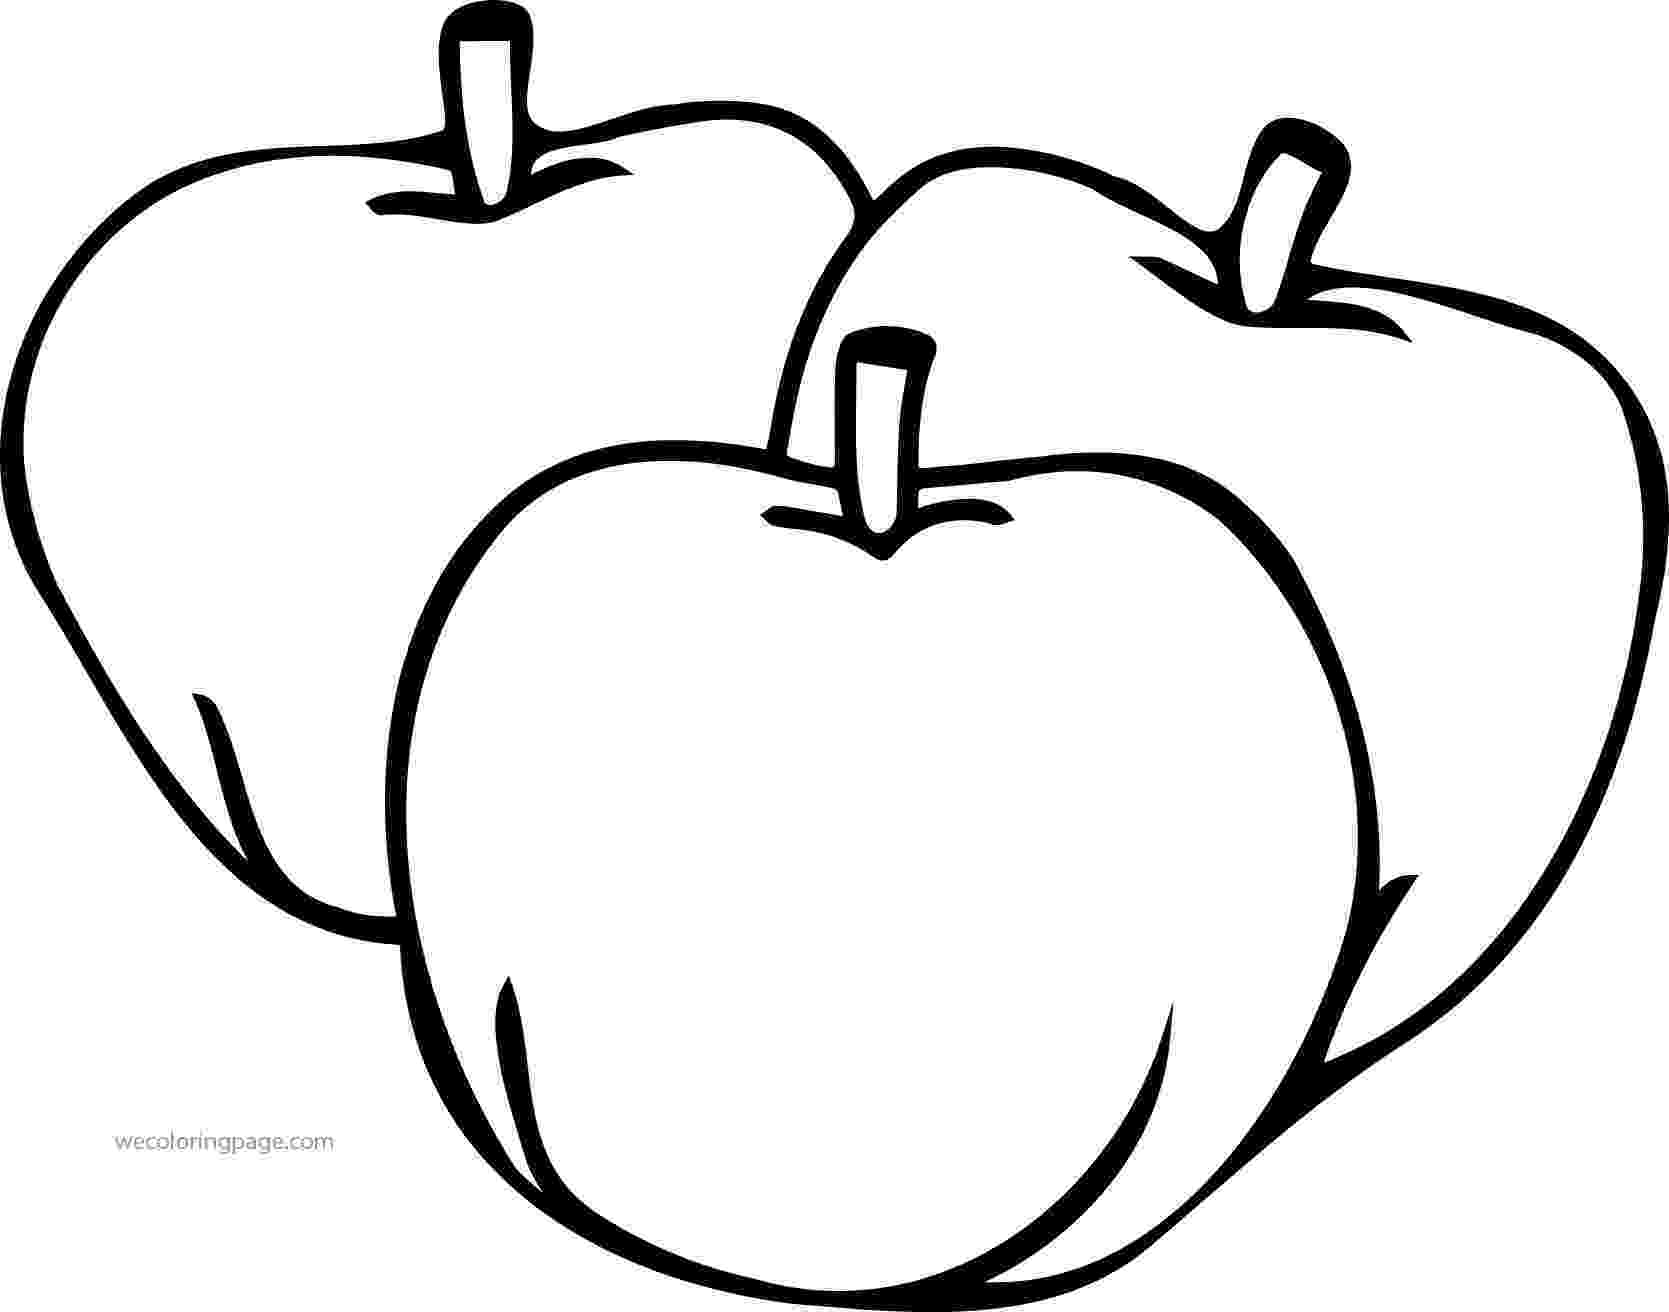 apple picture for kids free printable apple coloring pages for kids apple kids for picture